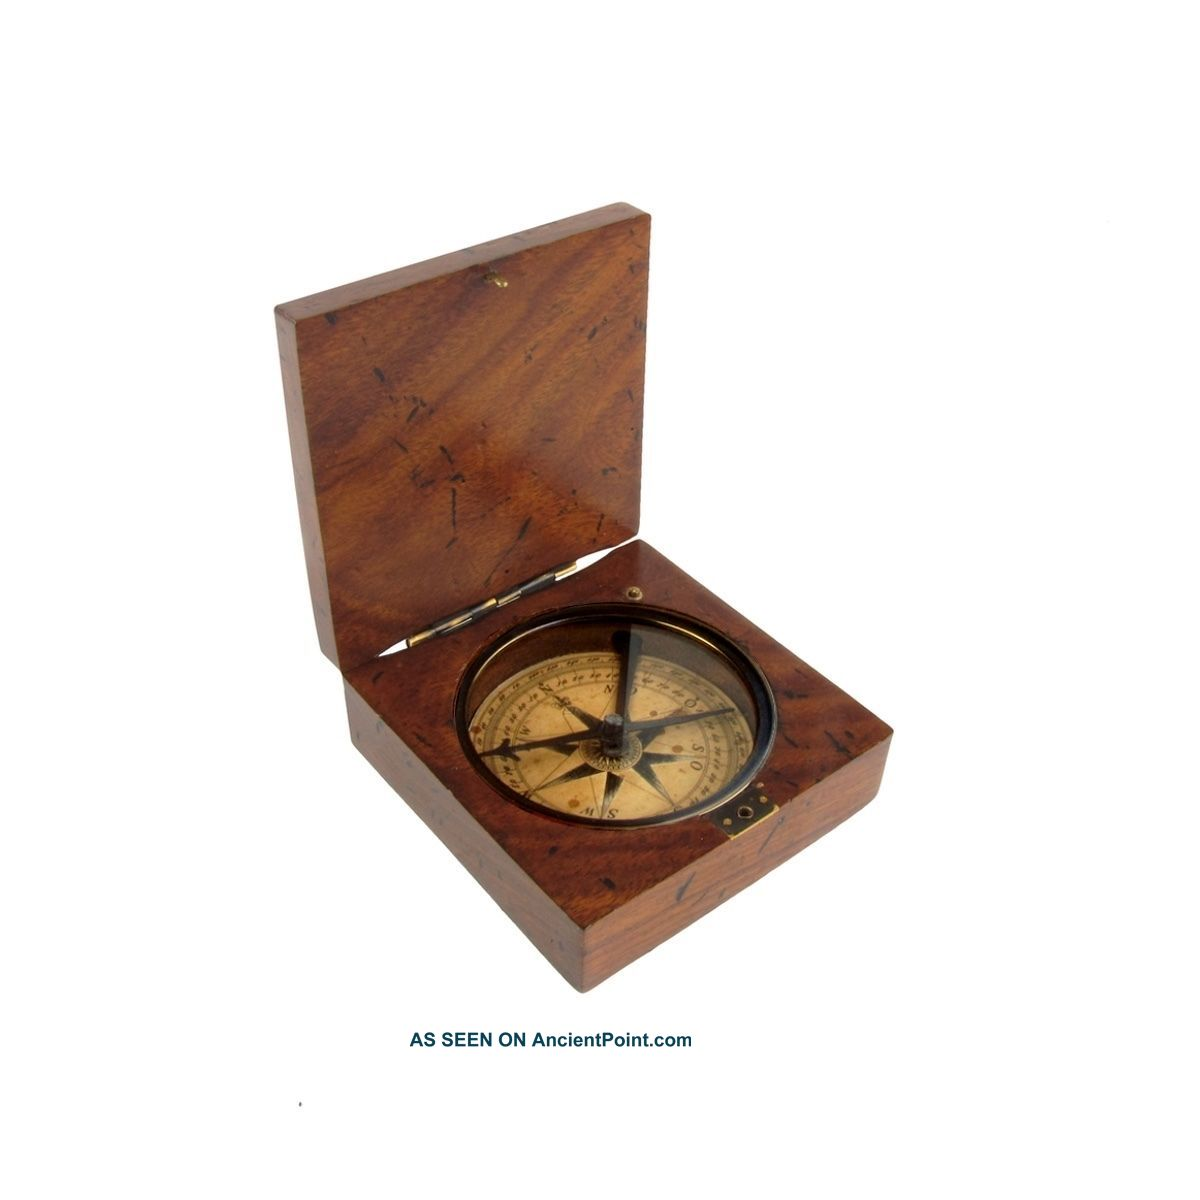 Vintage/antique Style Old Wood Box Directional Navigational Travel Compass Tool Compasses photo